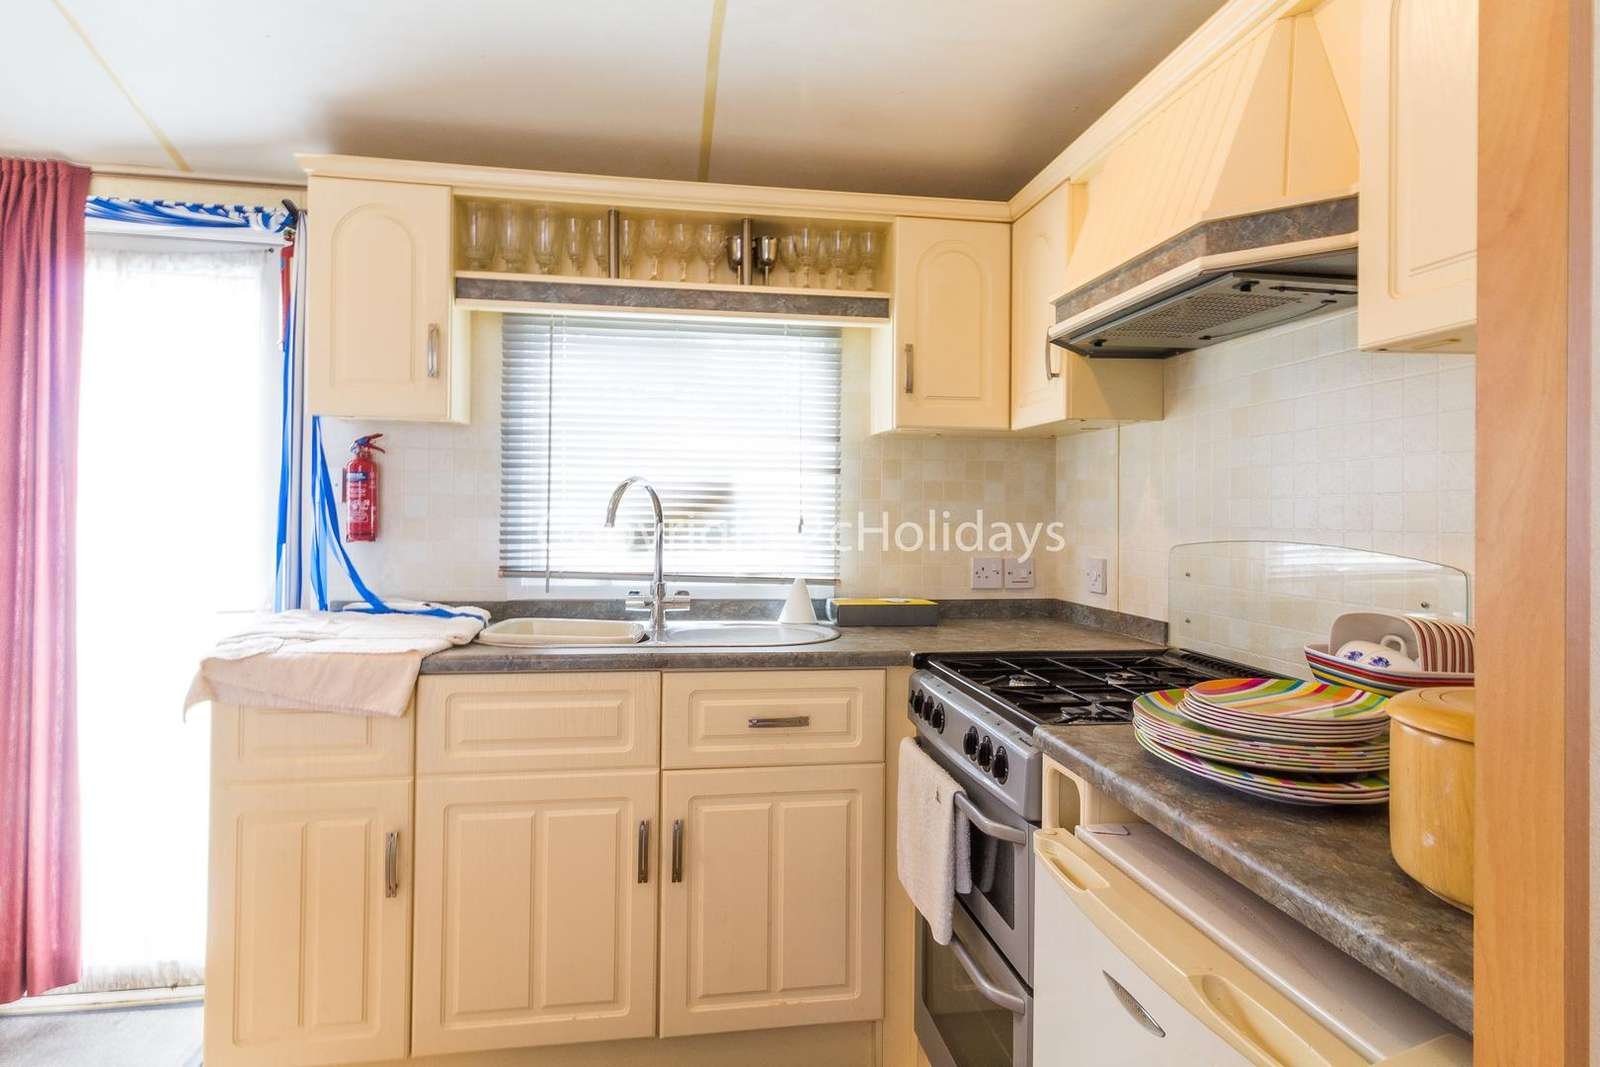 Great size full equipped kitchen, perfect for self-catering holidays!